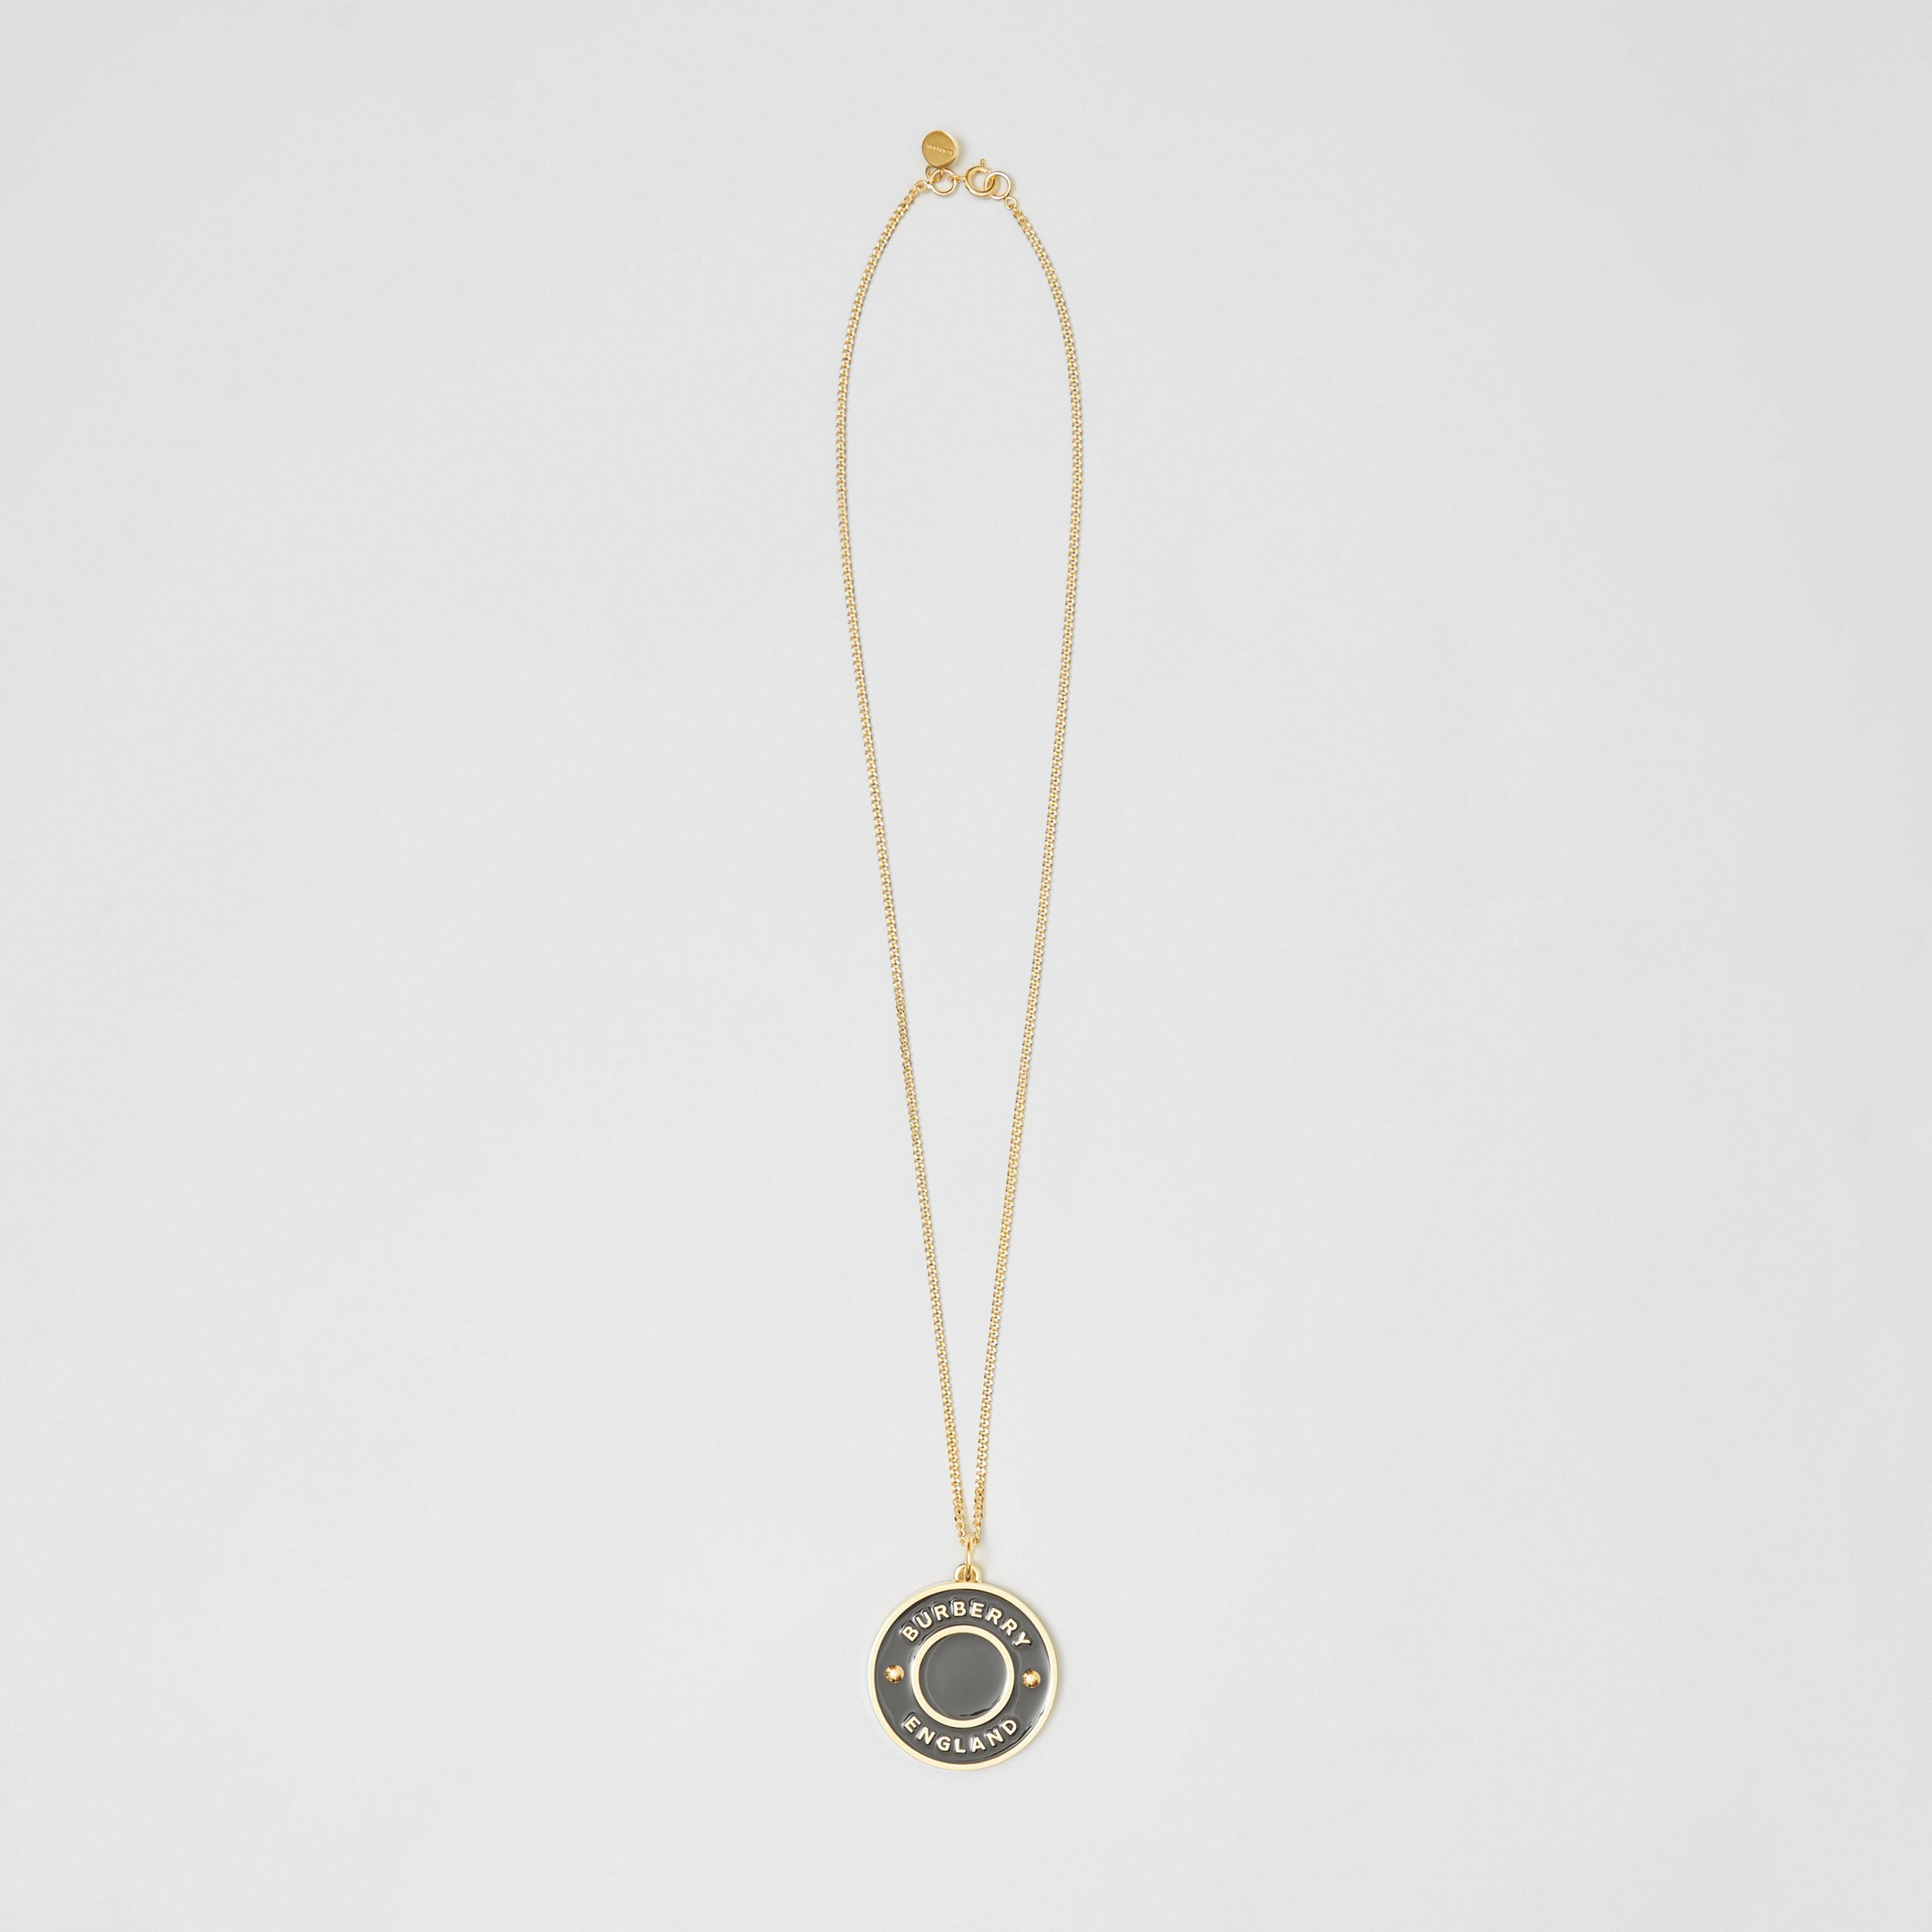 Logo Medallion Gold-plated Chain Necklace in Light Gold/enamel - Women | Burberry - 1